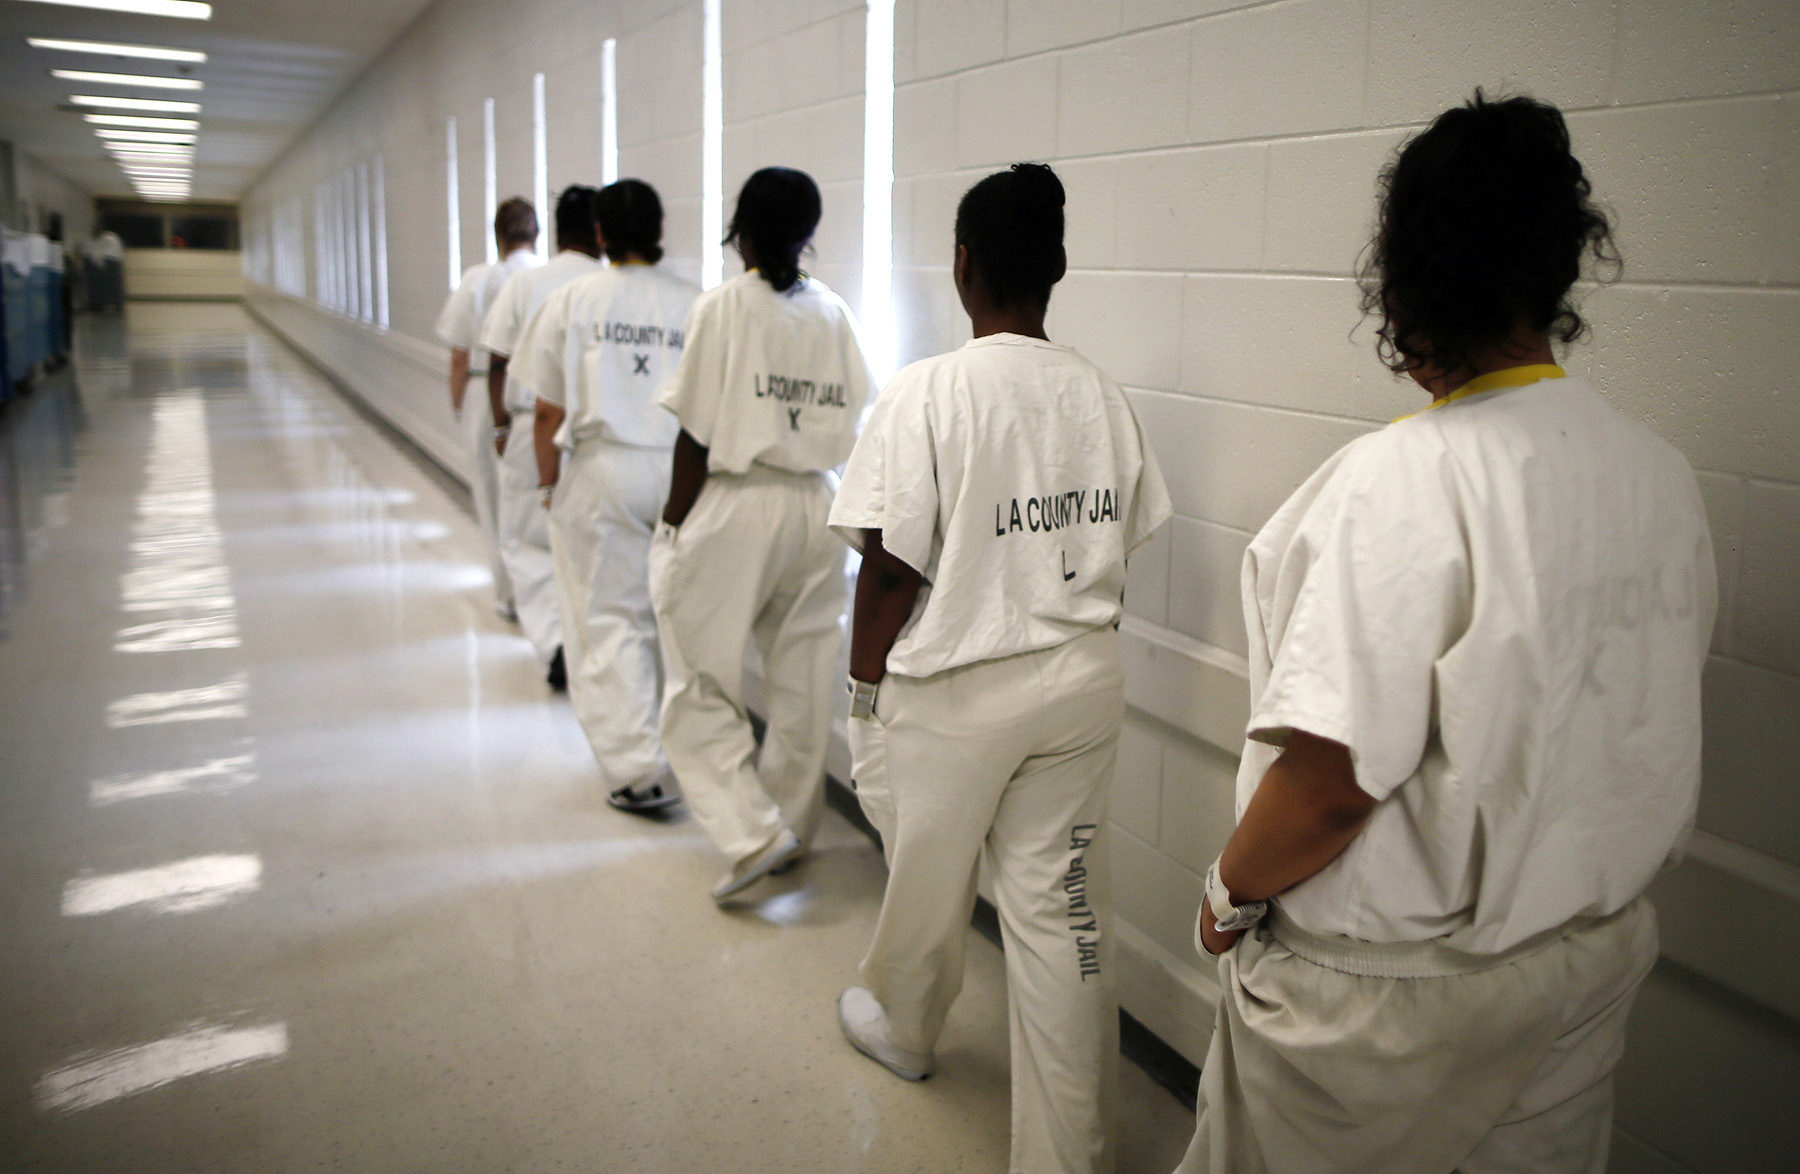 The growth of women's incarceration in the United States